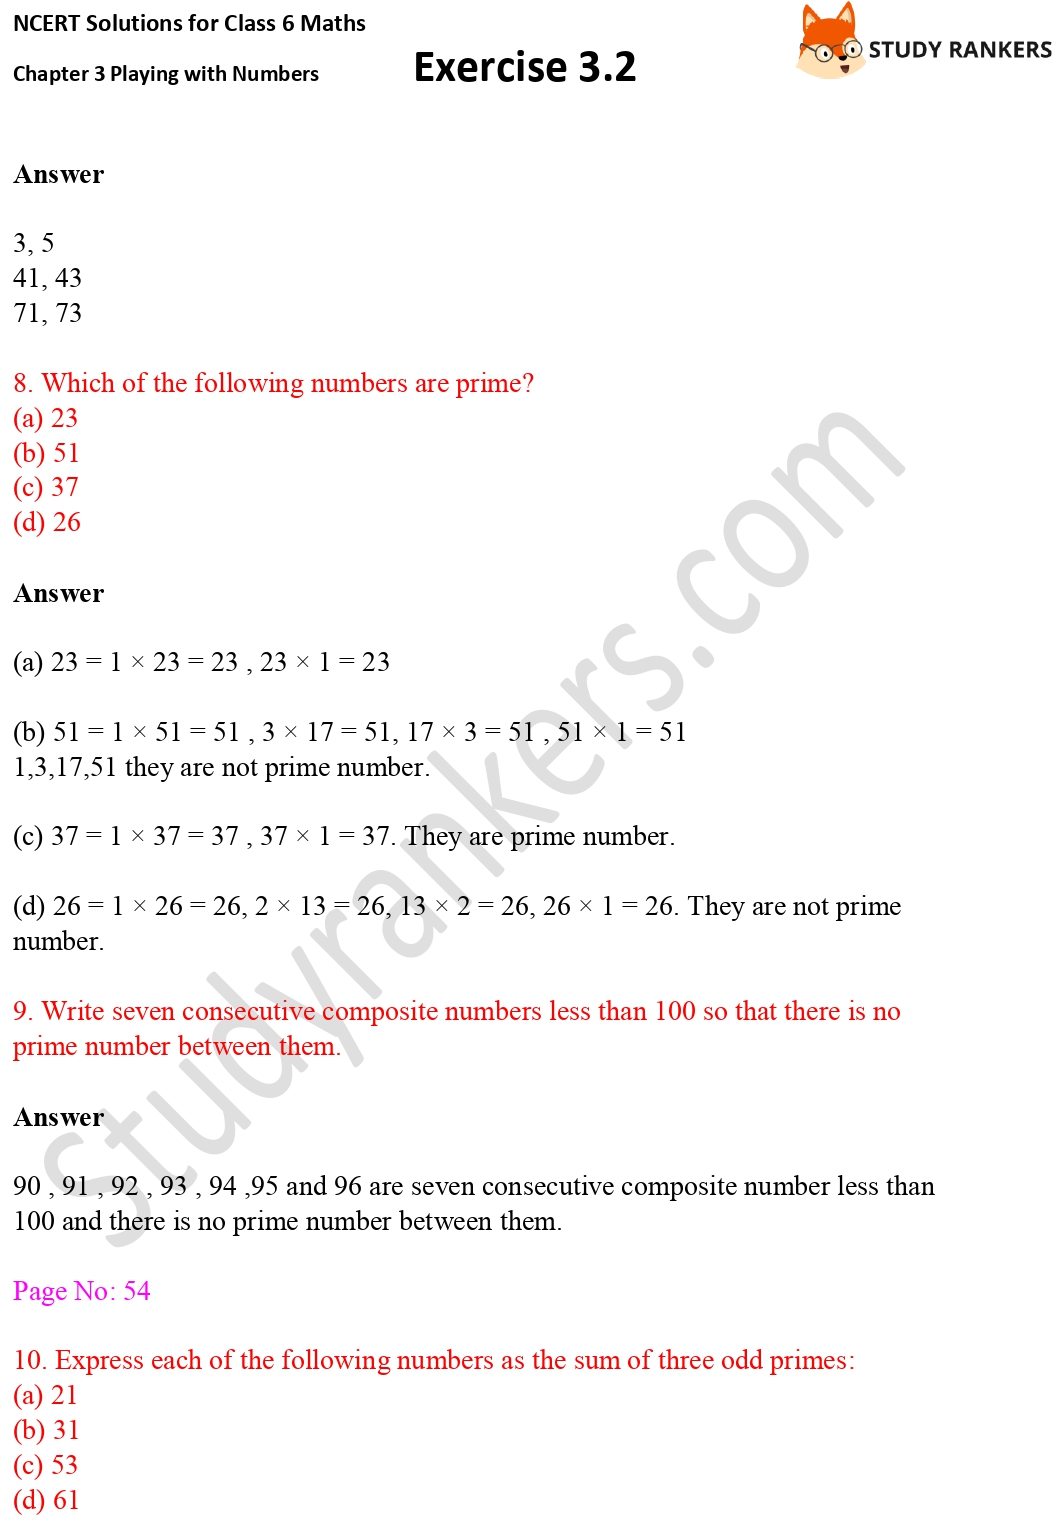 NCERT Solutions for Class 6 Maths Chapter 3 Playing with Numbers Exercise 3.2 Part 3